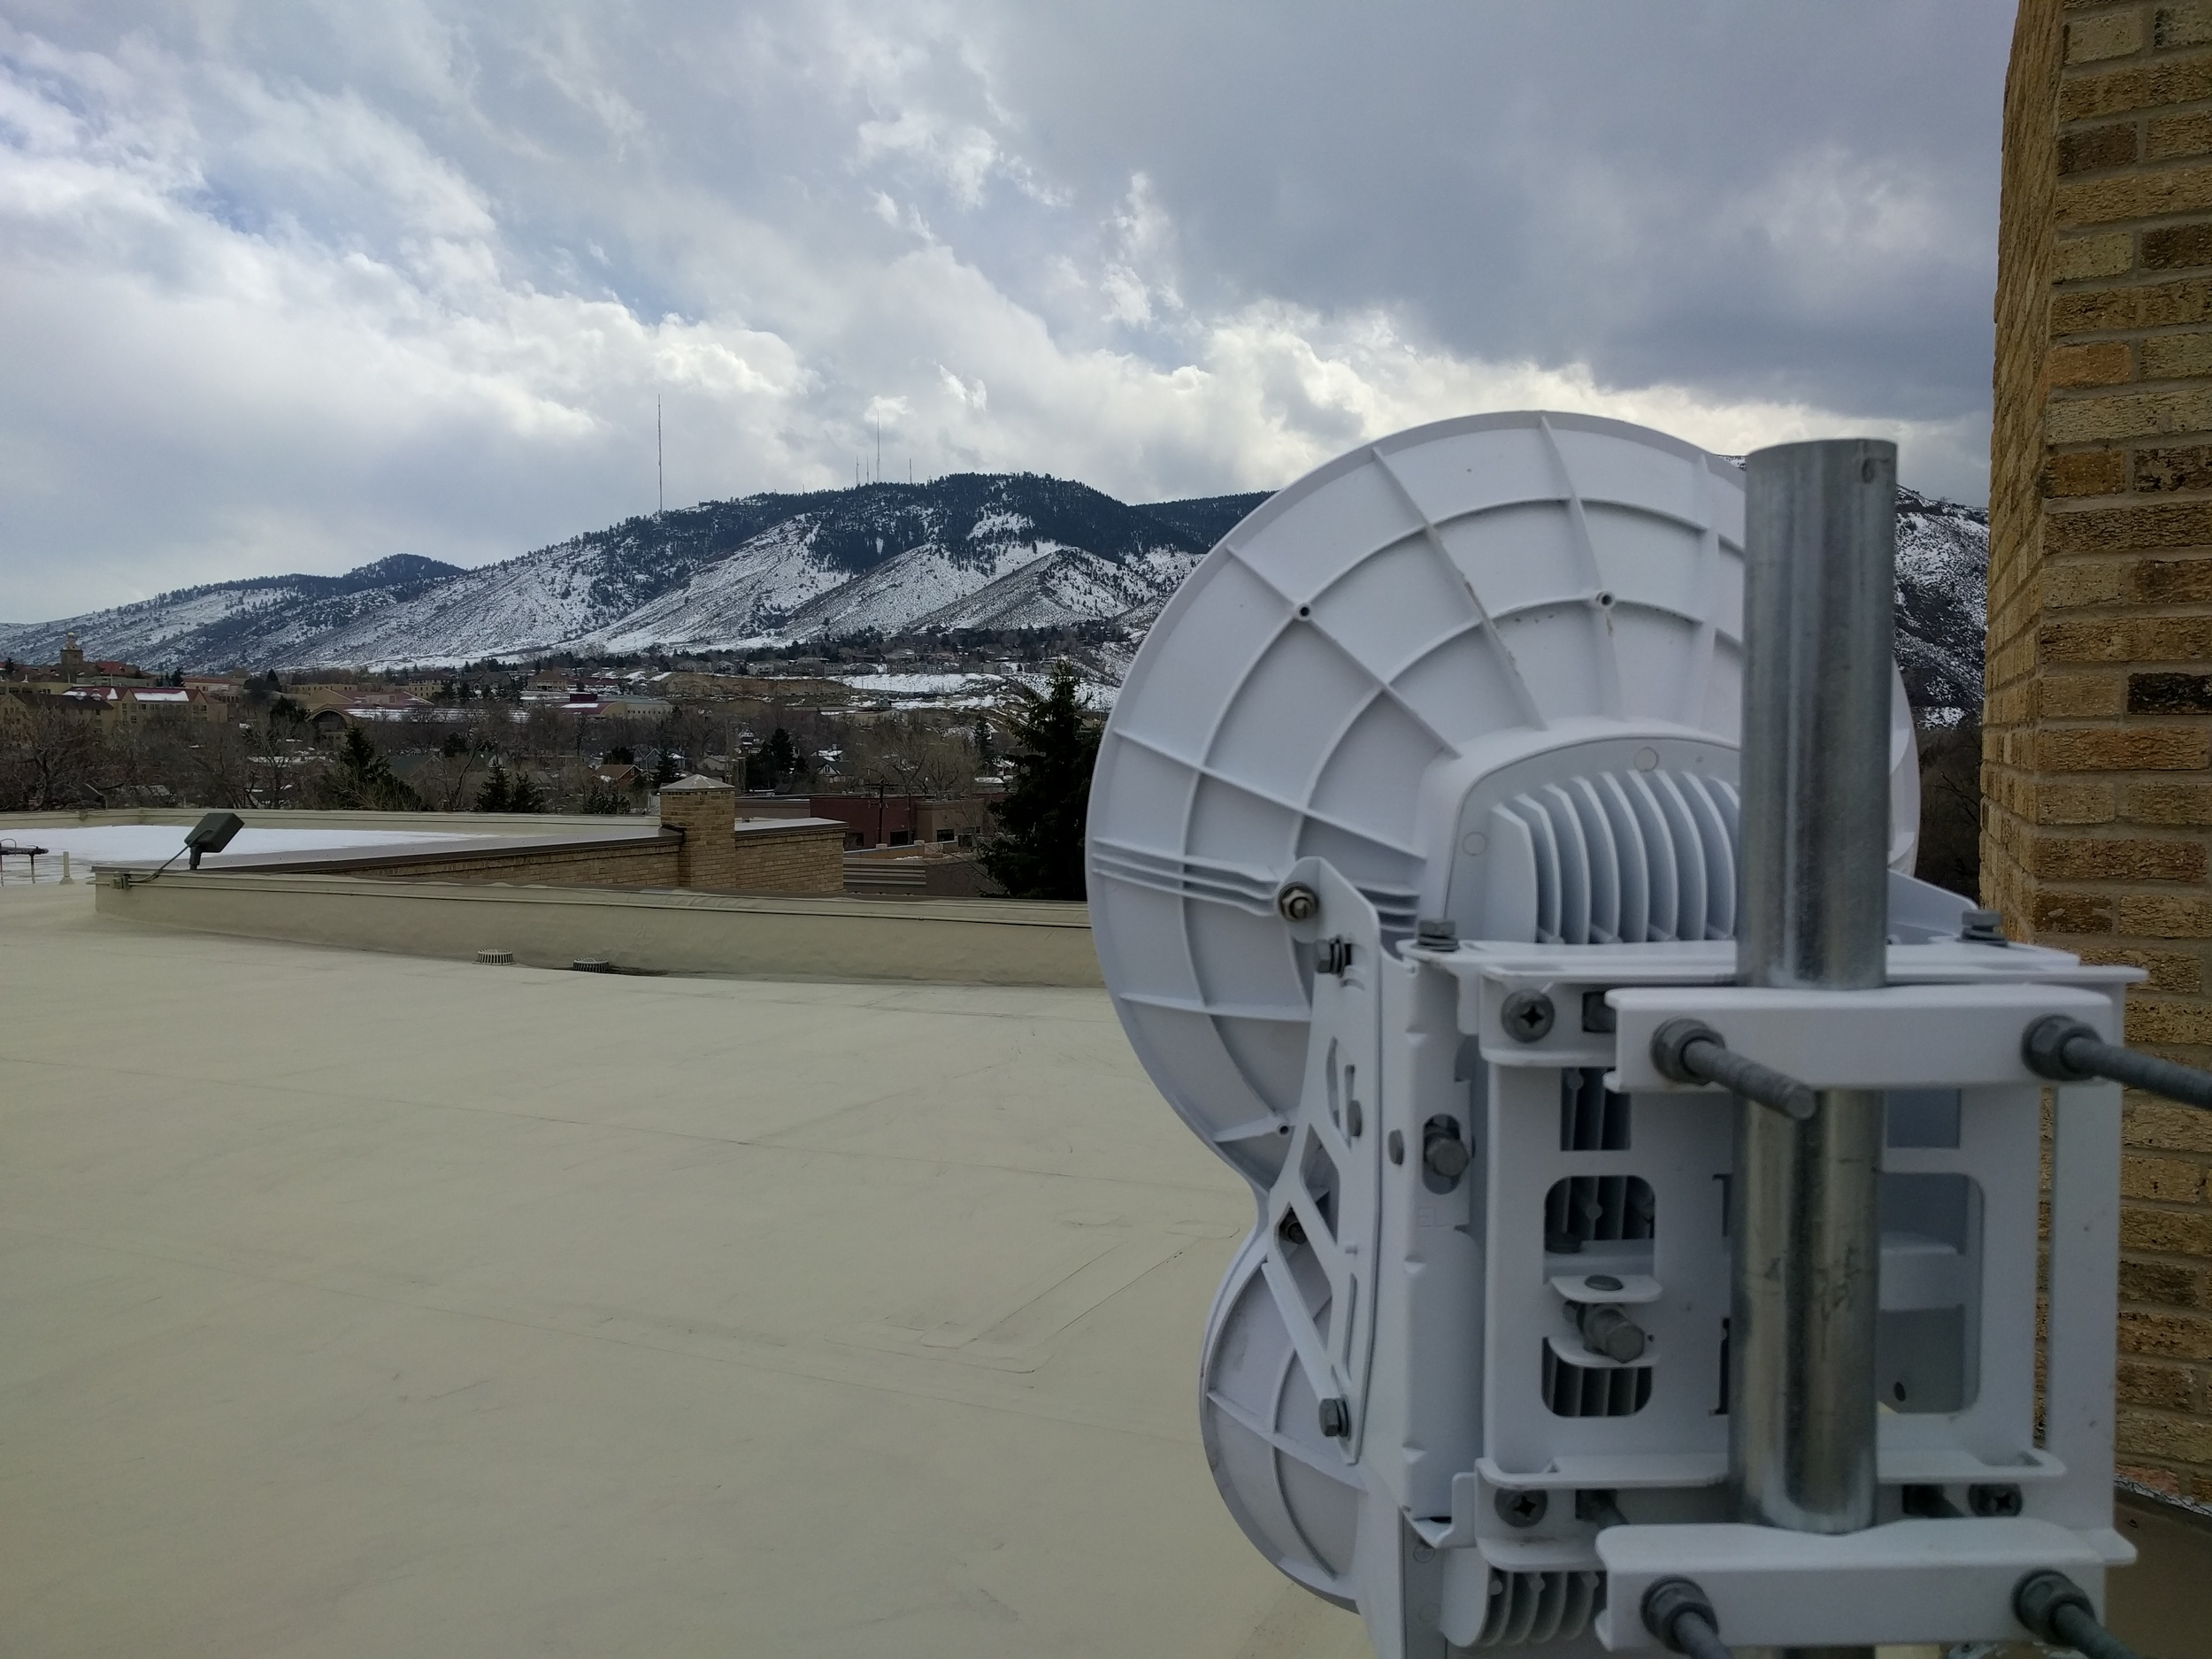 Backhaul radio on the roof of the Mountaineering Center